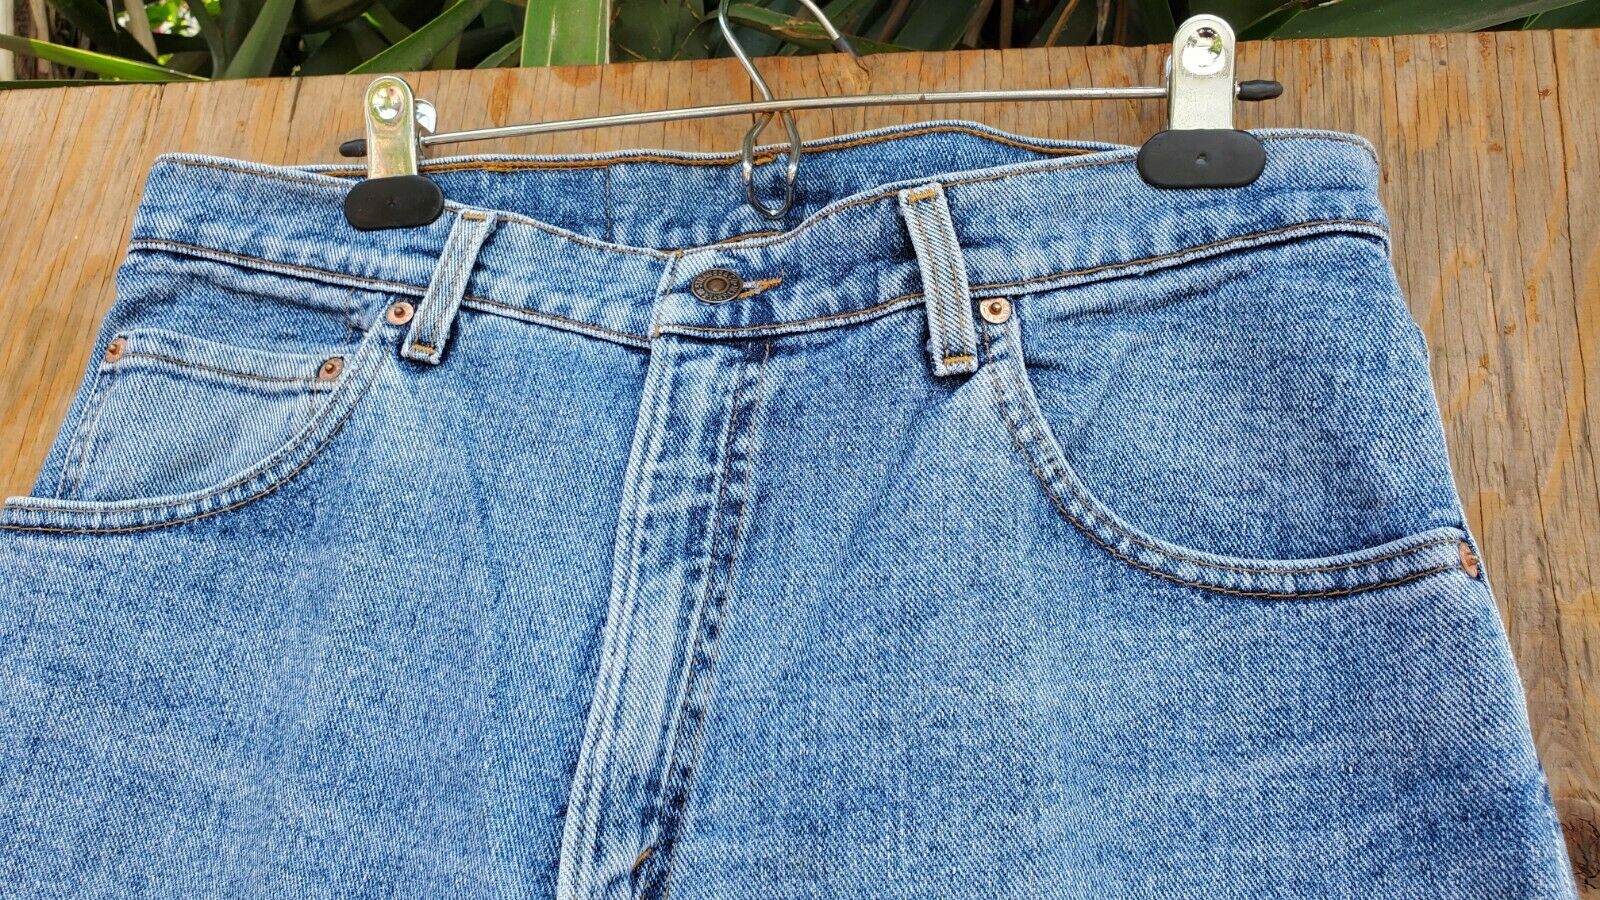 levis 560 34x32.made In Usa - image 5